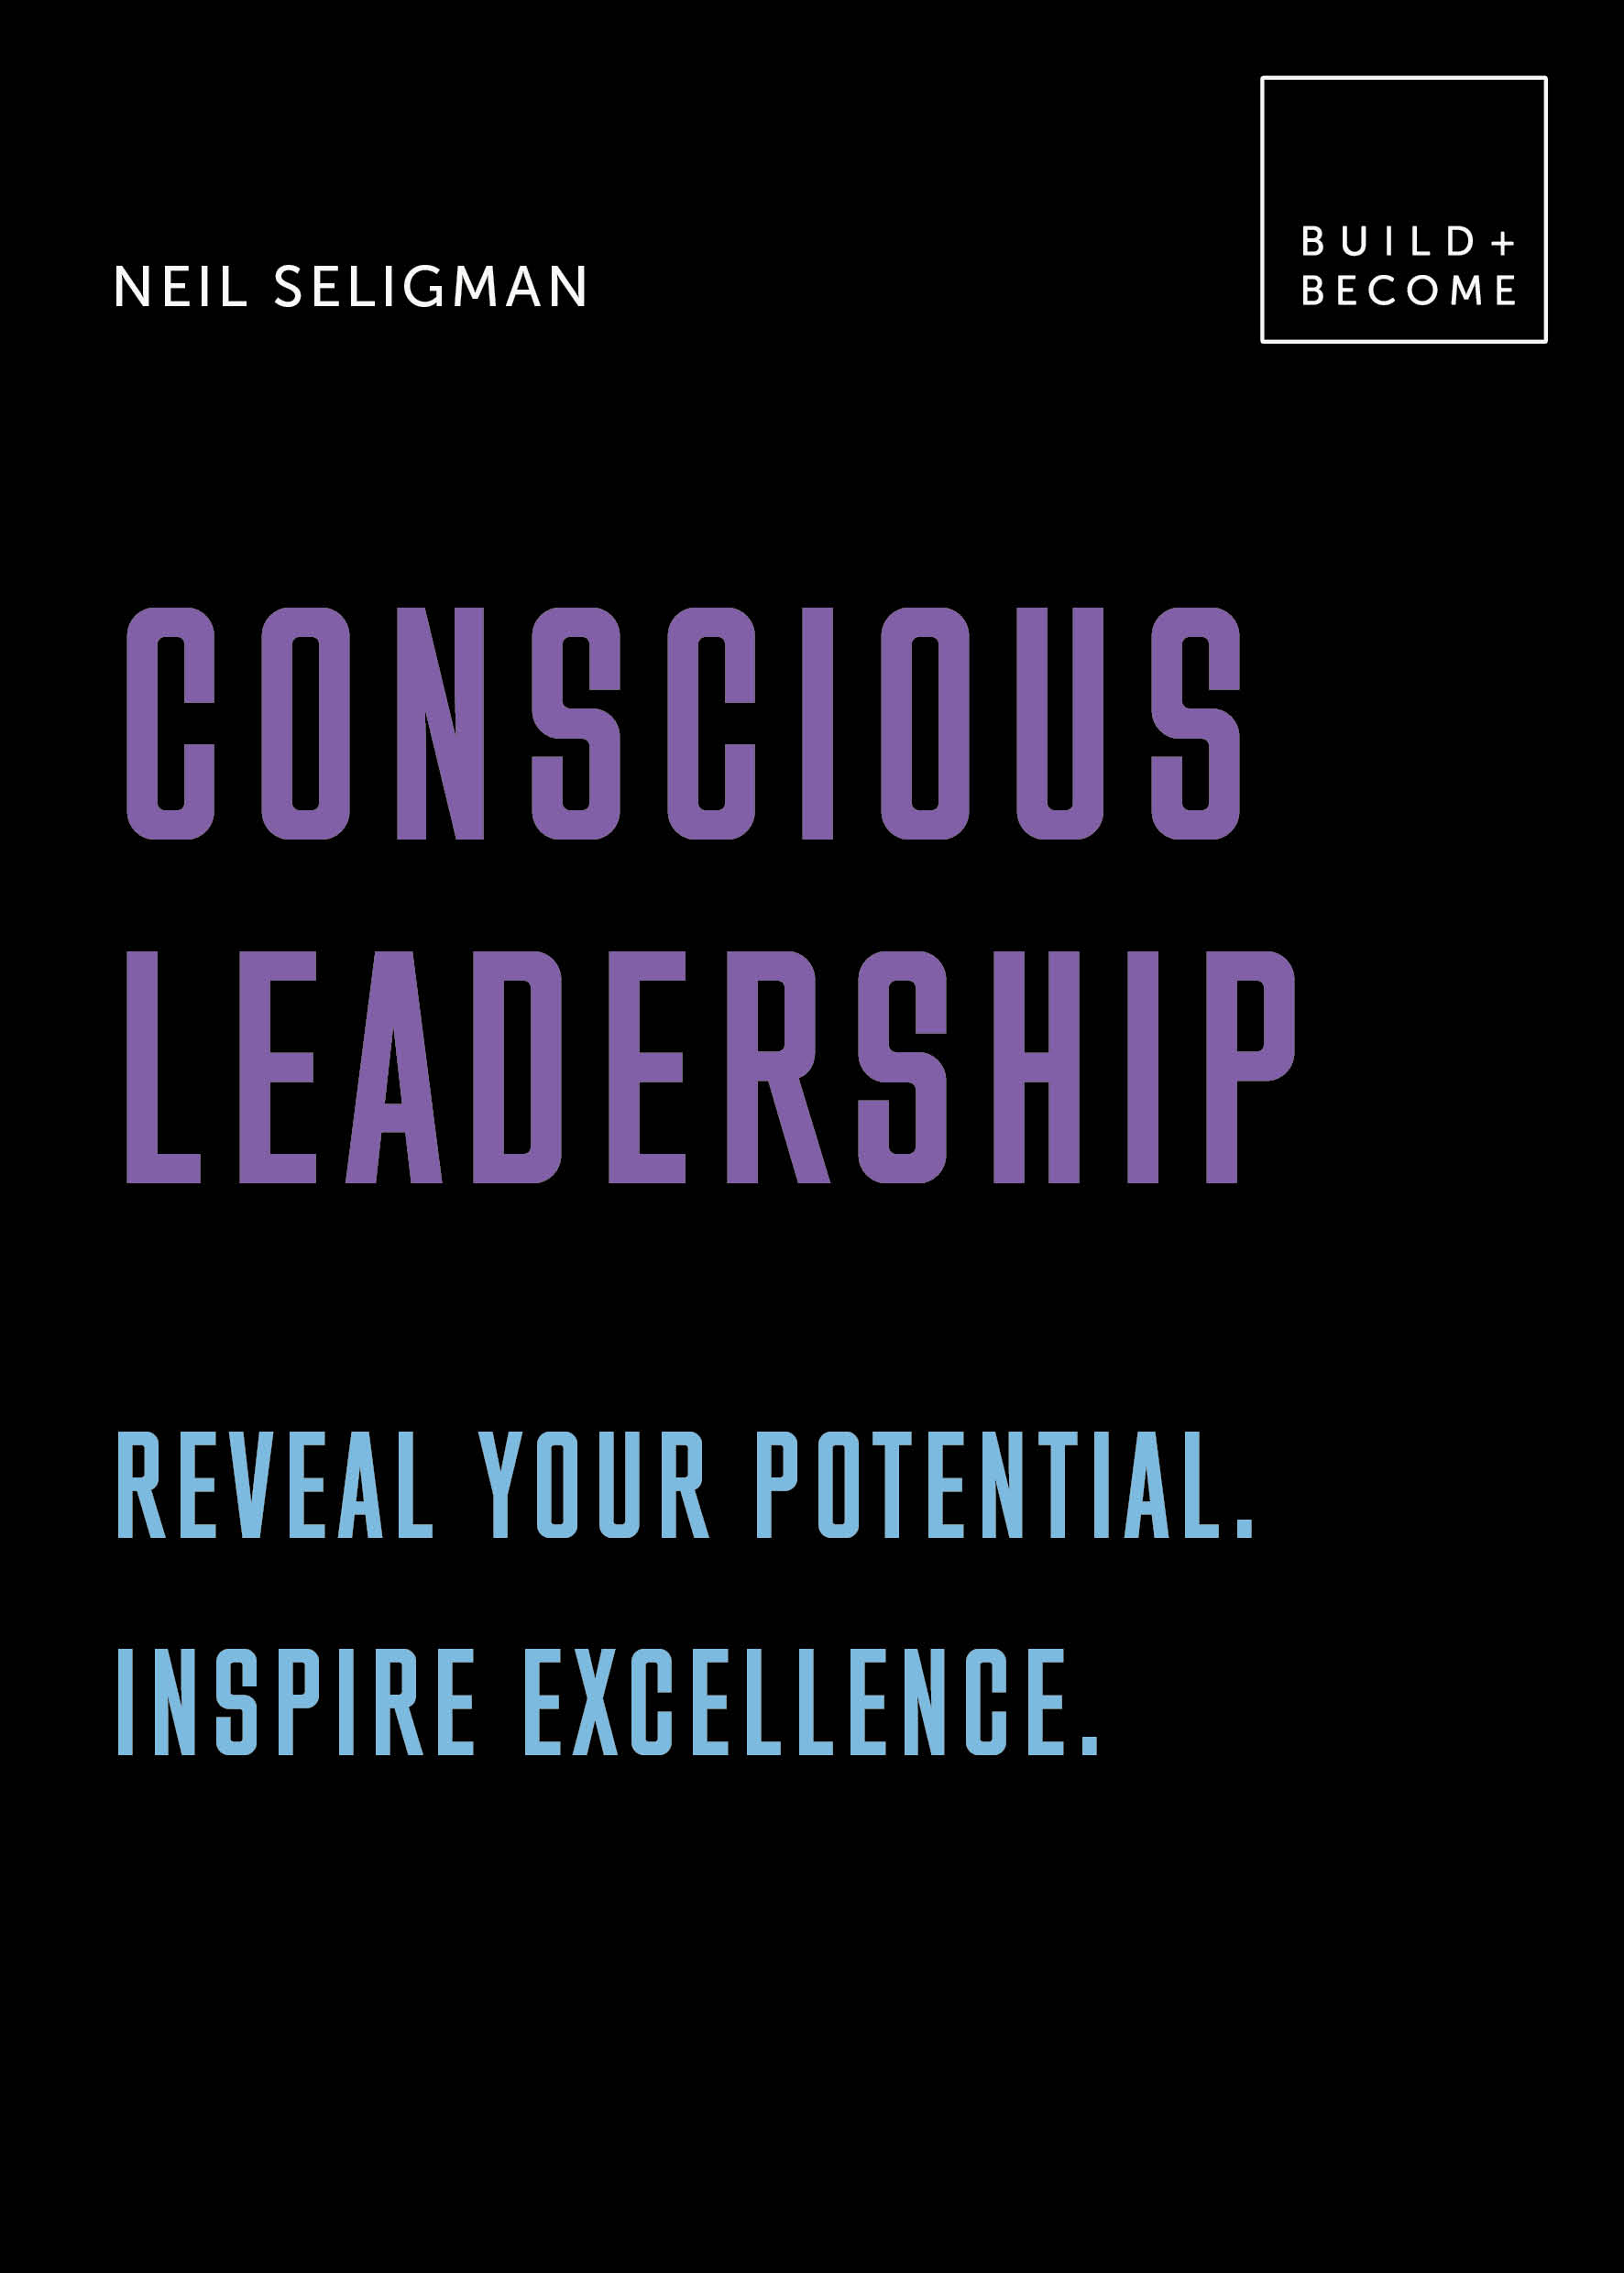 Conscious Leadership by Neil Seligman